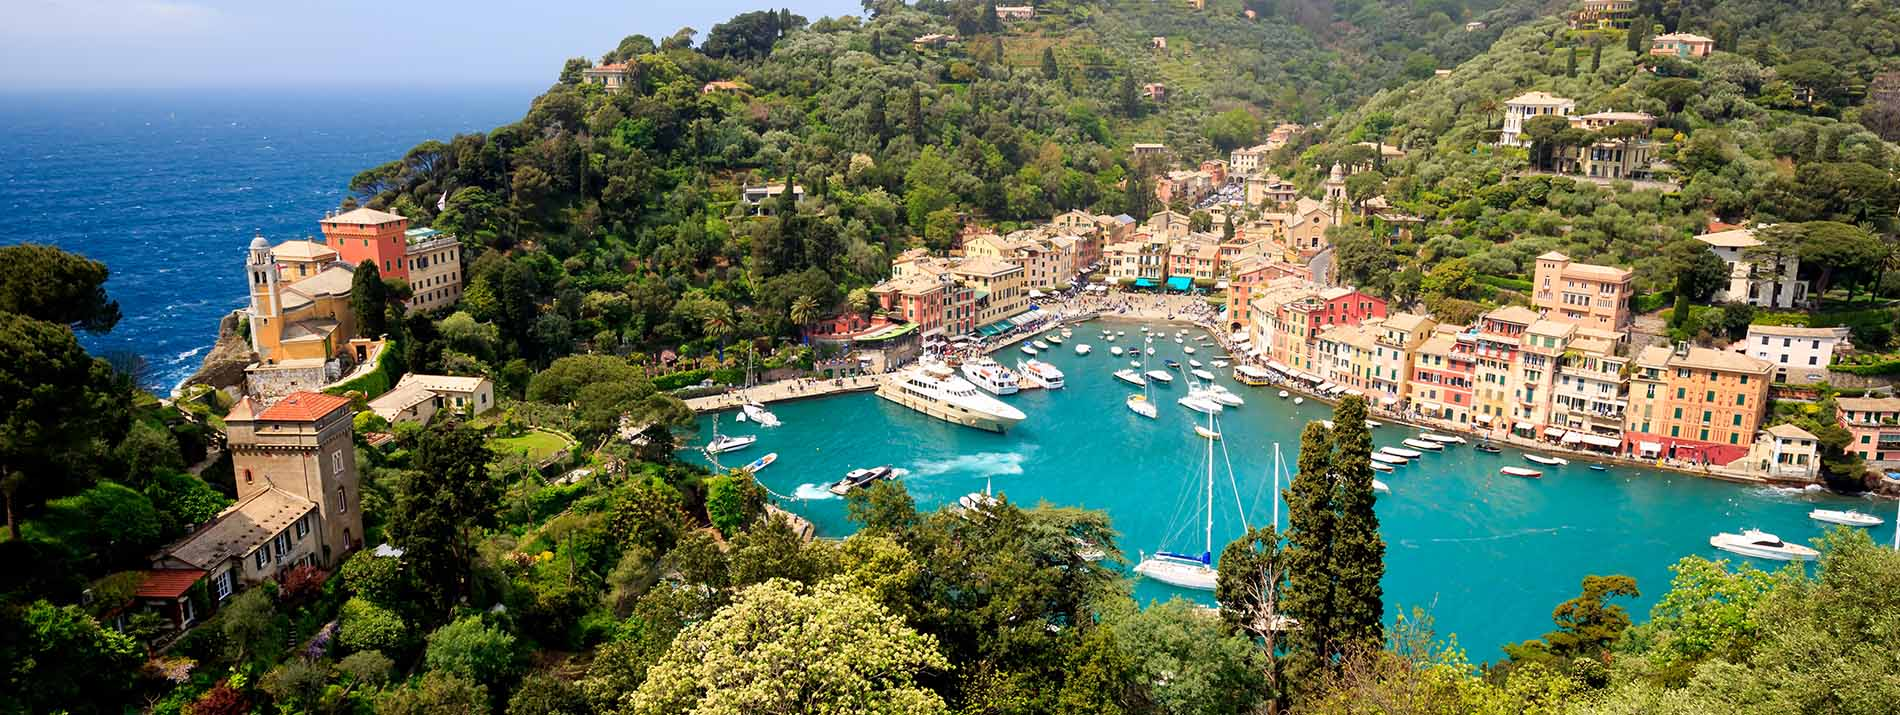 Rent a Boat Portofino - Rent a Boat Santa Margherita - Day Cruise Portofino - Day Cruise Santa Margherita - tender cinque terre - portofino photo